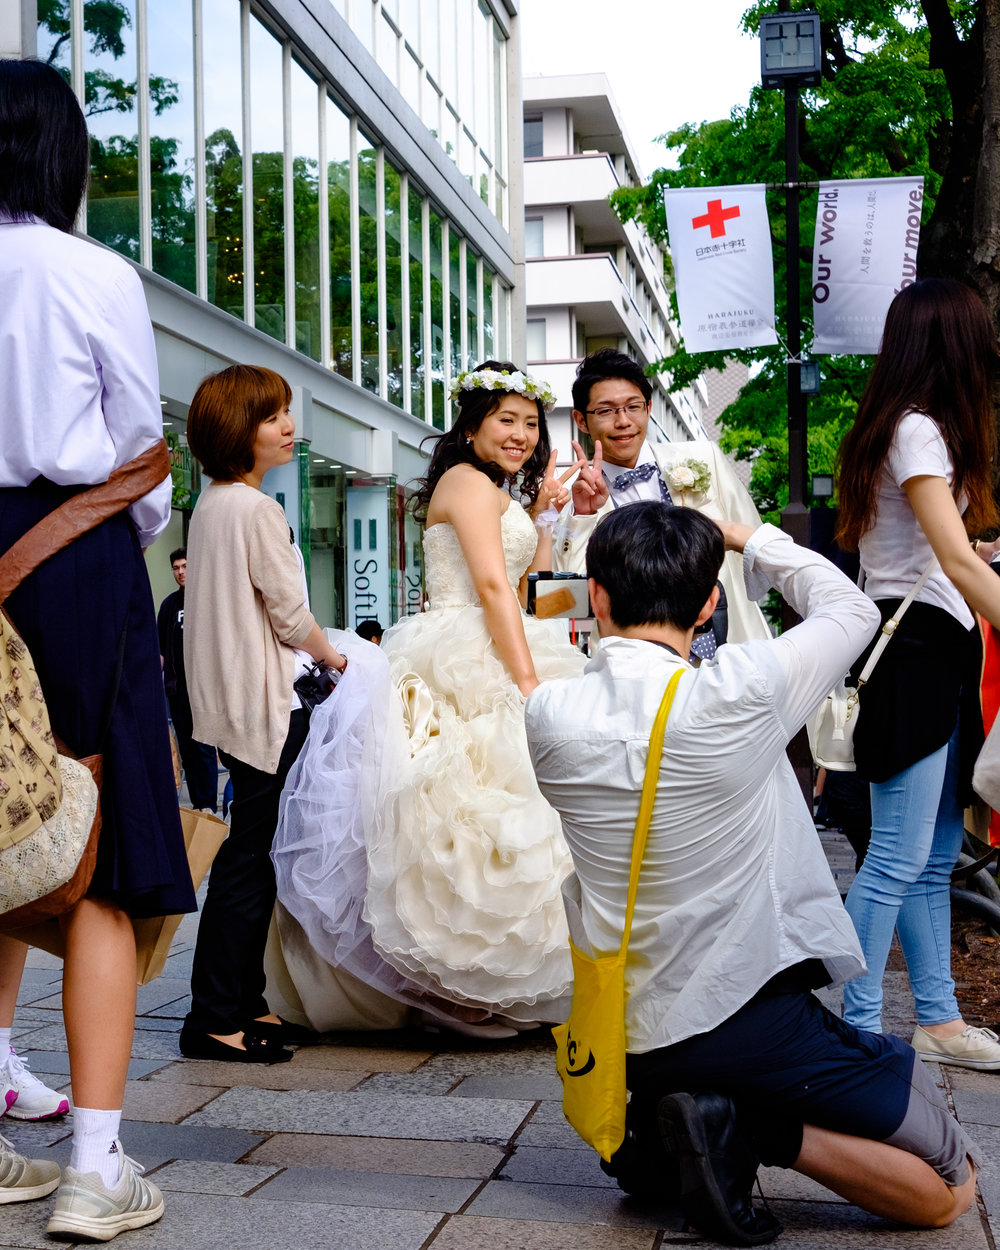 Not a sight you see every day - I was sitting faffing around with my camera bag next to a crossing in Harijuku when this couple stopped waiting to cross the road and their photographer decided it was time to grab some photos.